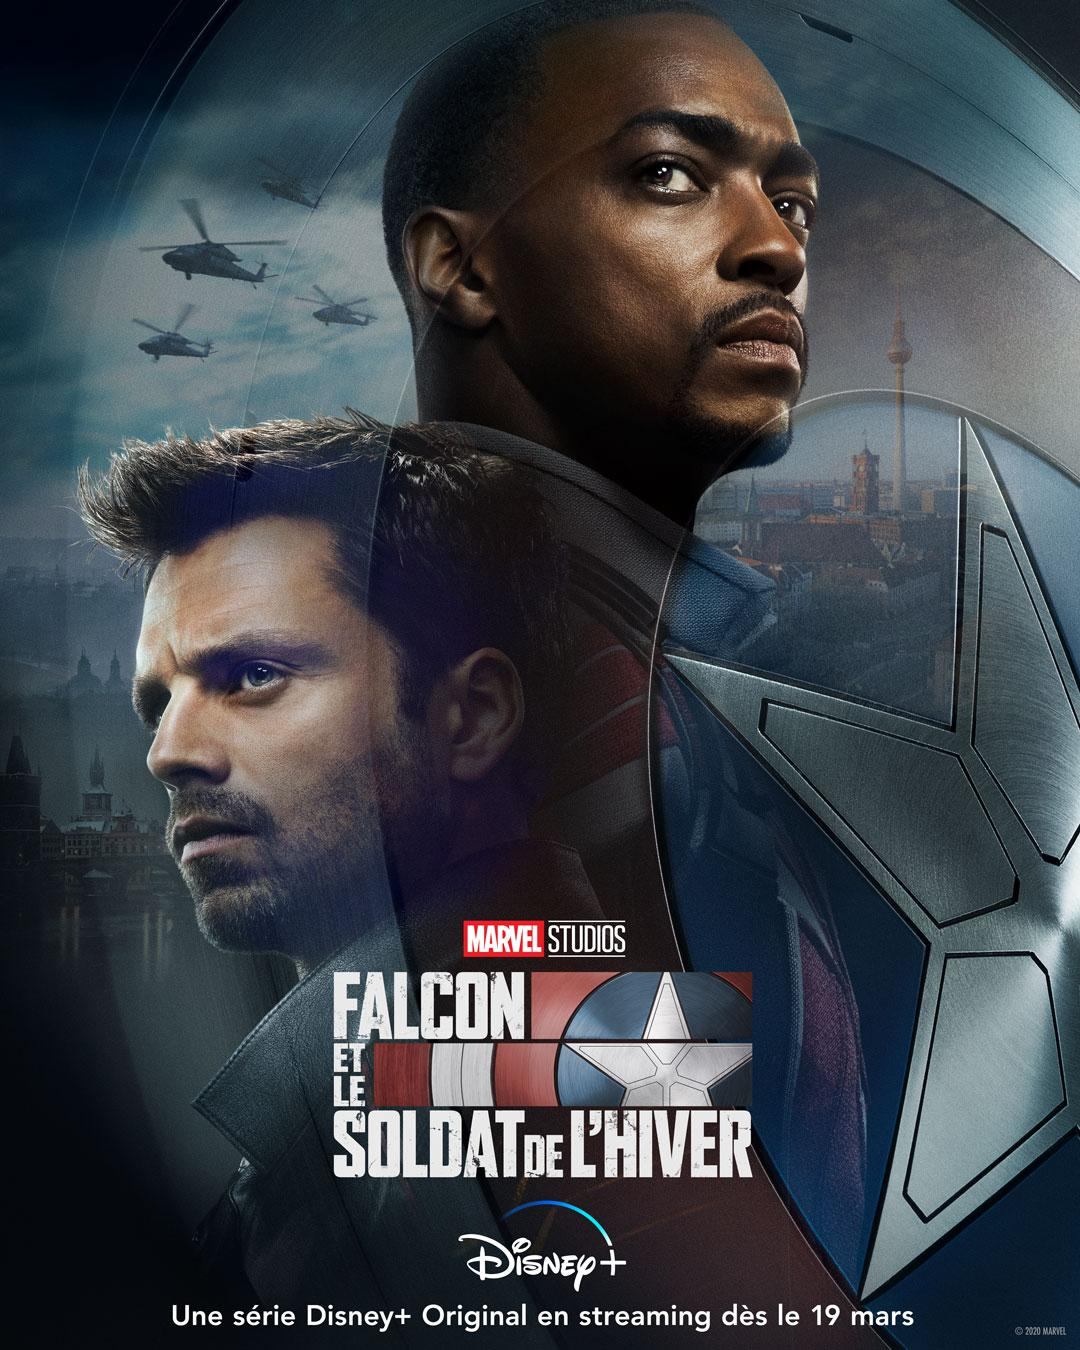 Falcon soldathiver poster1